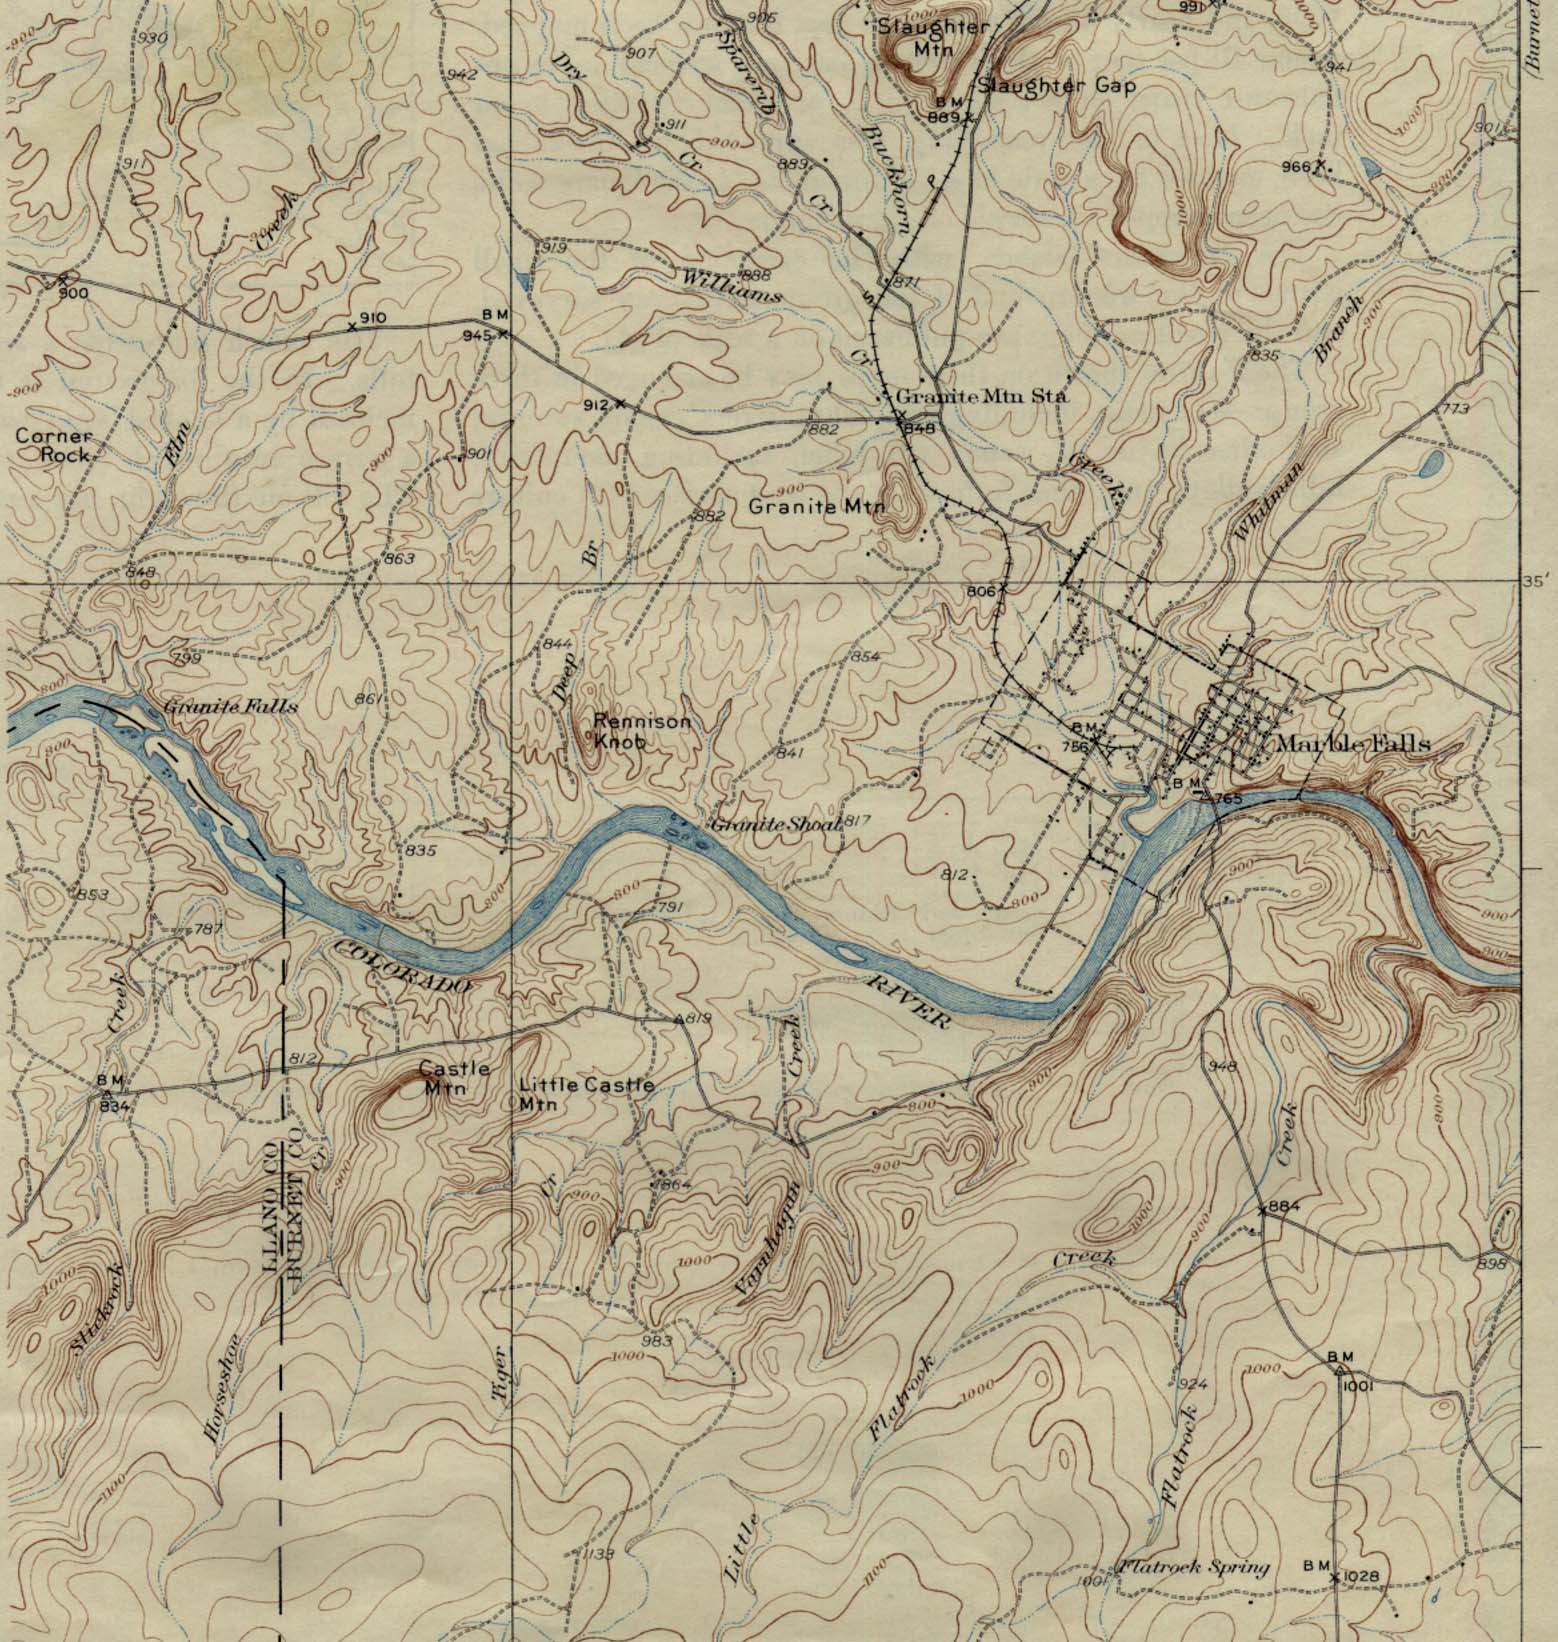 Historical Maps of U.S Cities. Marble Falls, Texas 1929 Original Scale 1:62,500 U.S. Geological Survey 1929. (389K)